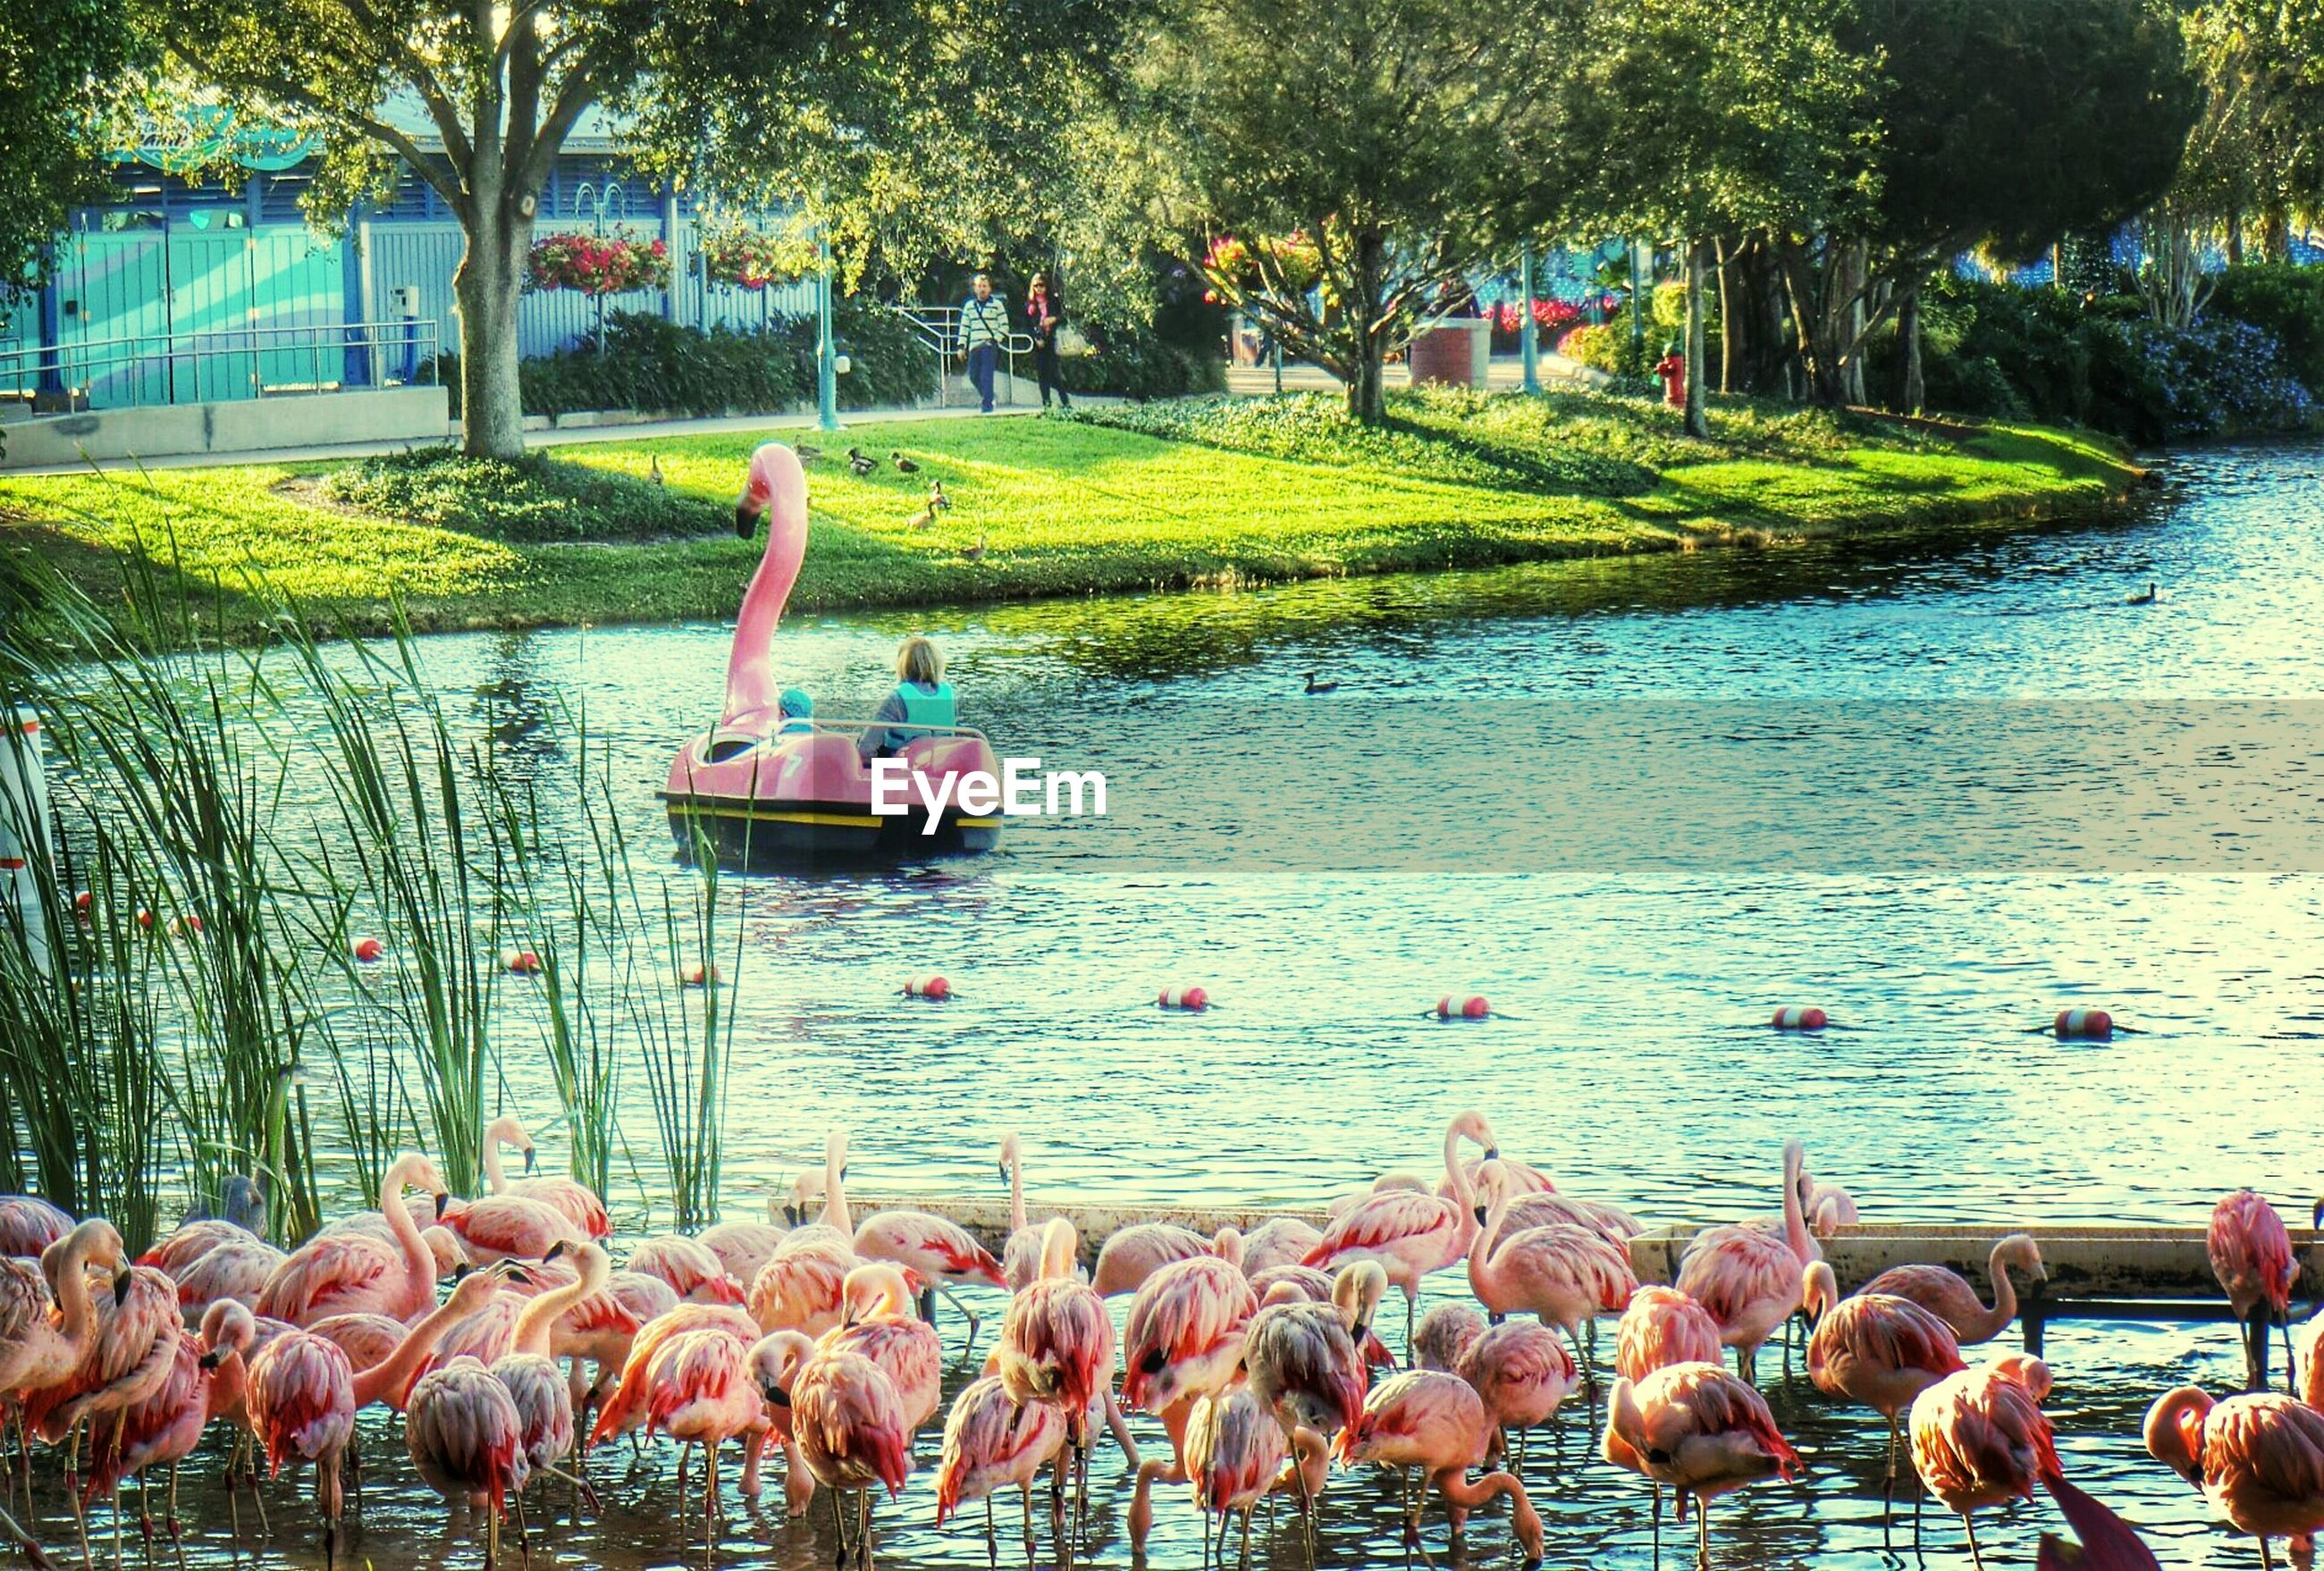 water, bird, animal themes, tree, wildlife, animals in the wild, nature, day, outdoors, lake, medium group of animals, flock of birds, duck, pond, sunlight, beauty in nature, grass, large group of people